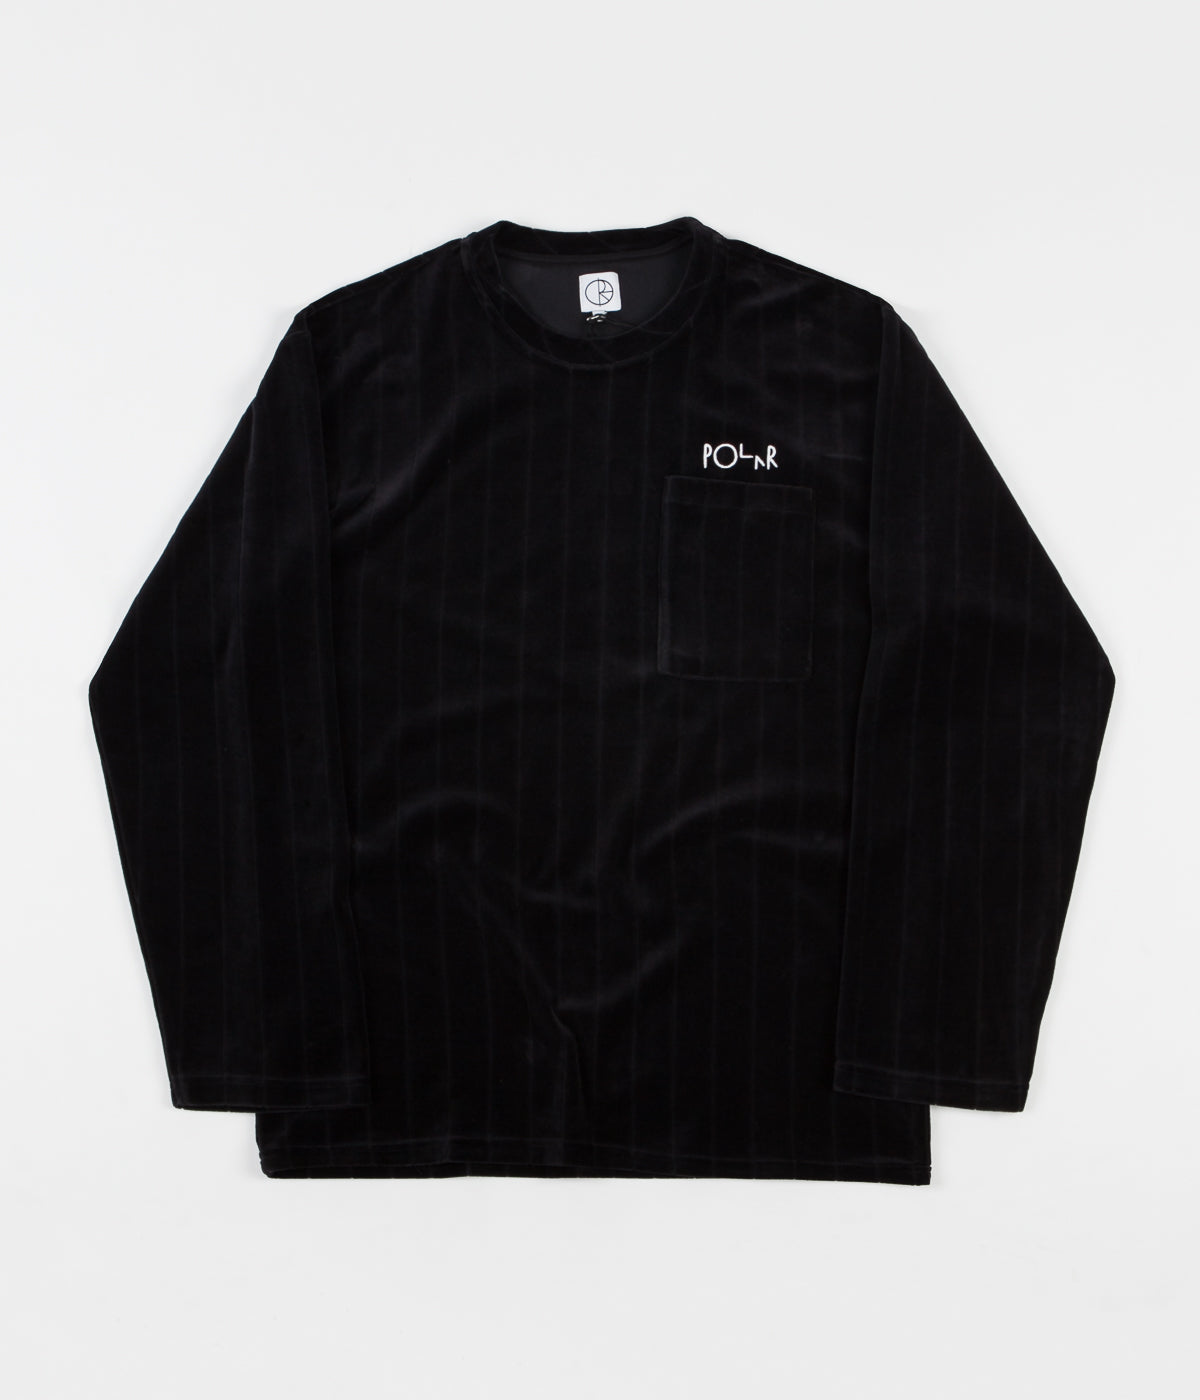 Polar Velour Pullover Sweatshirt - Black